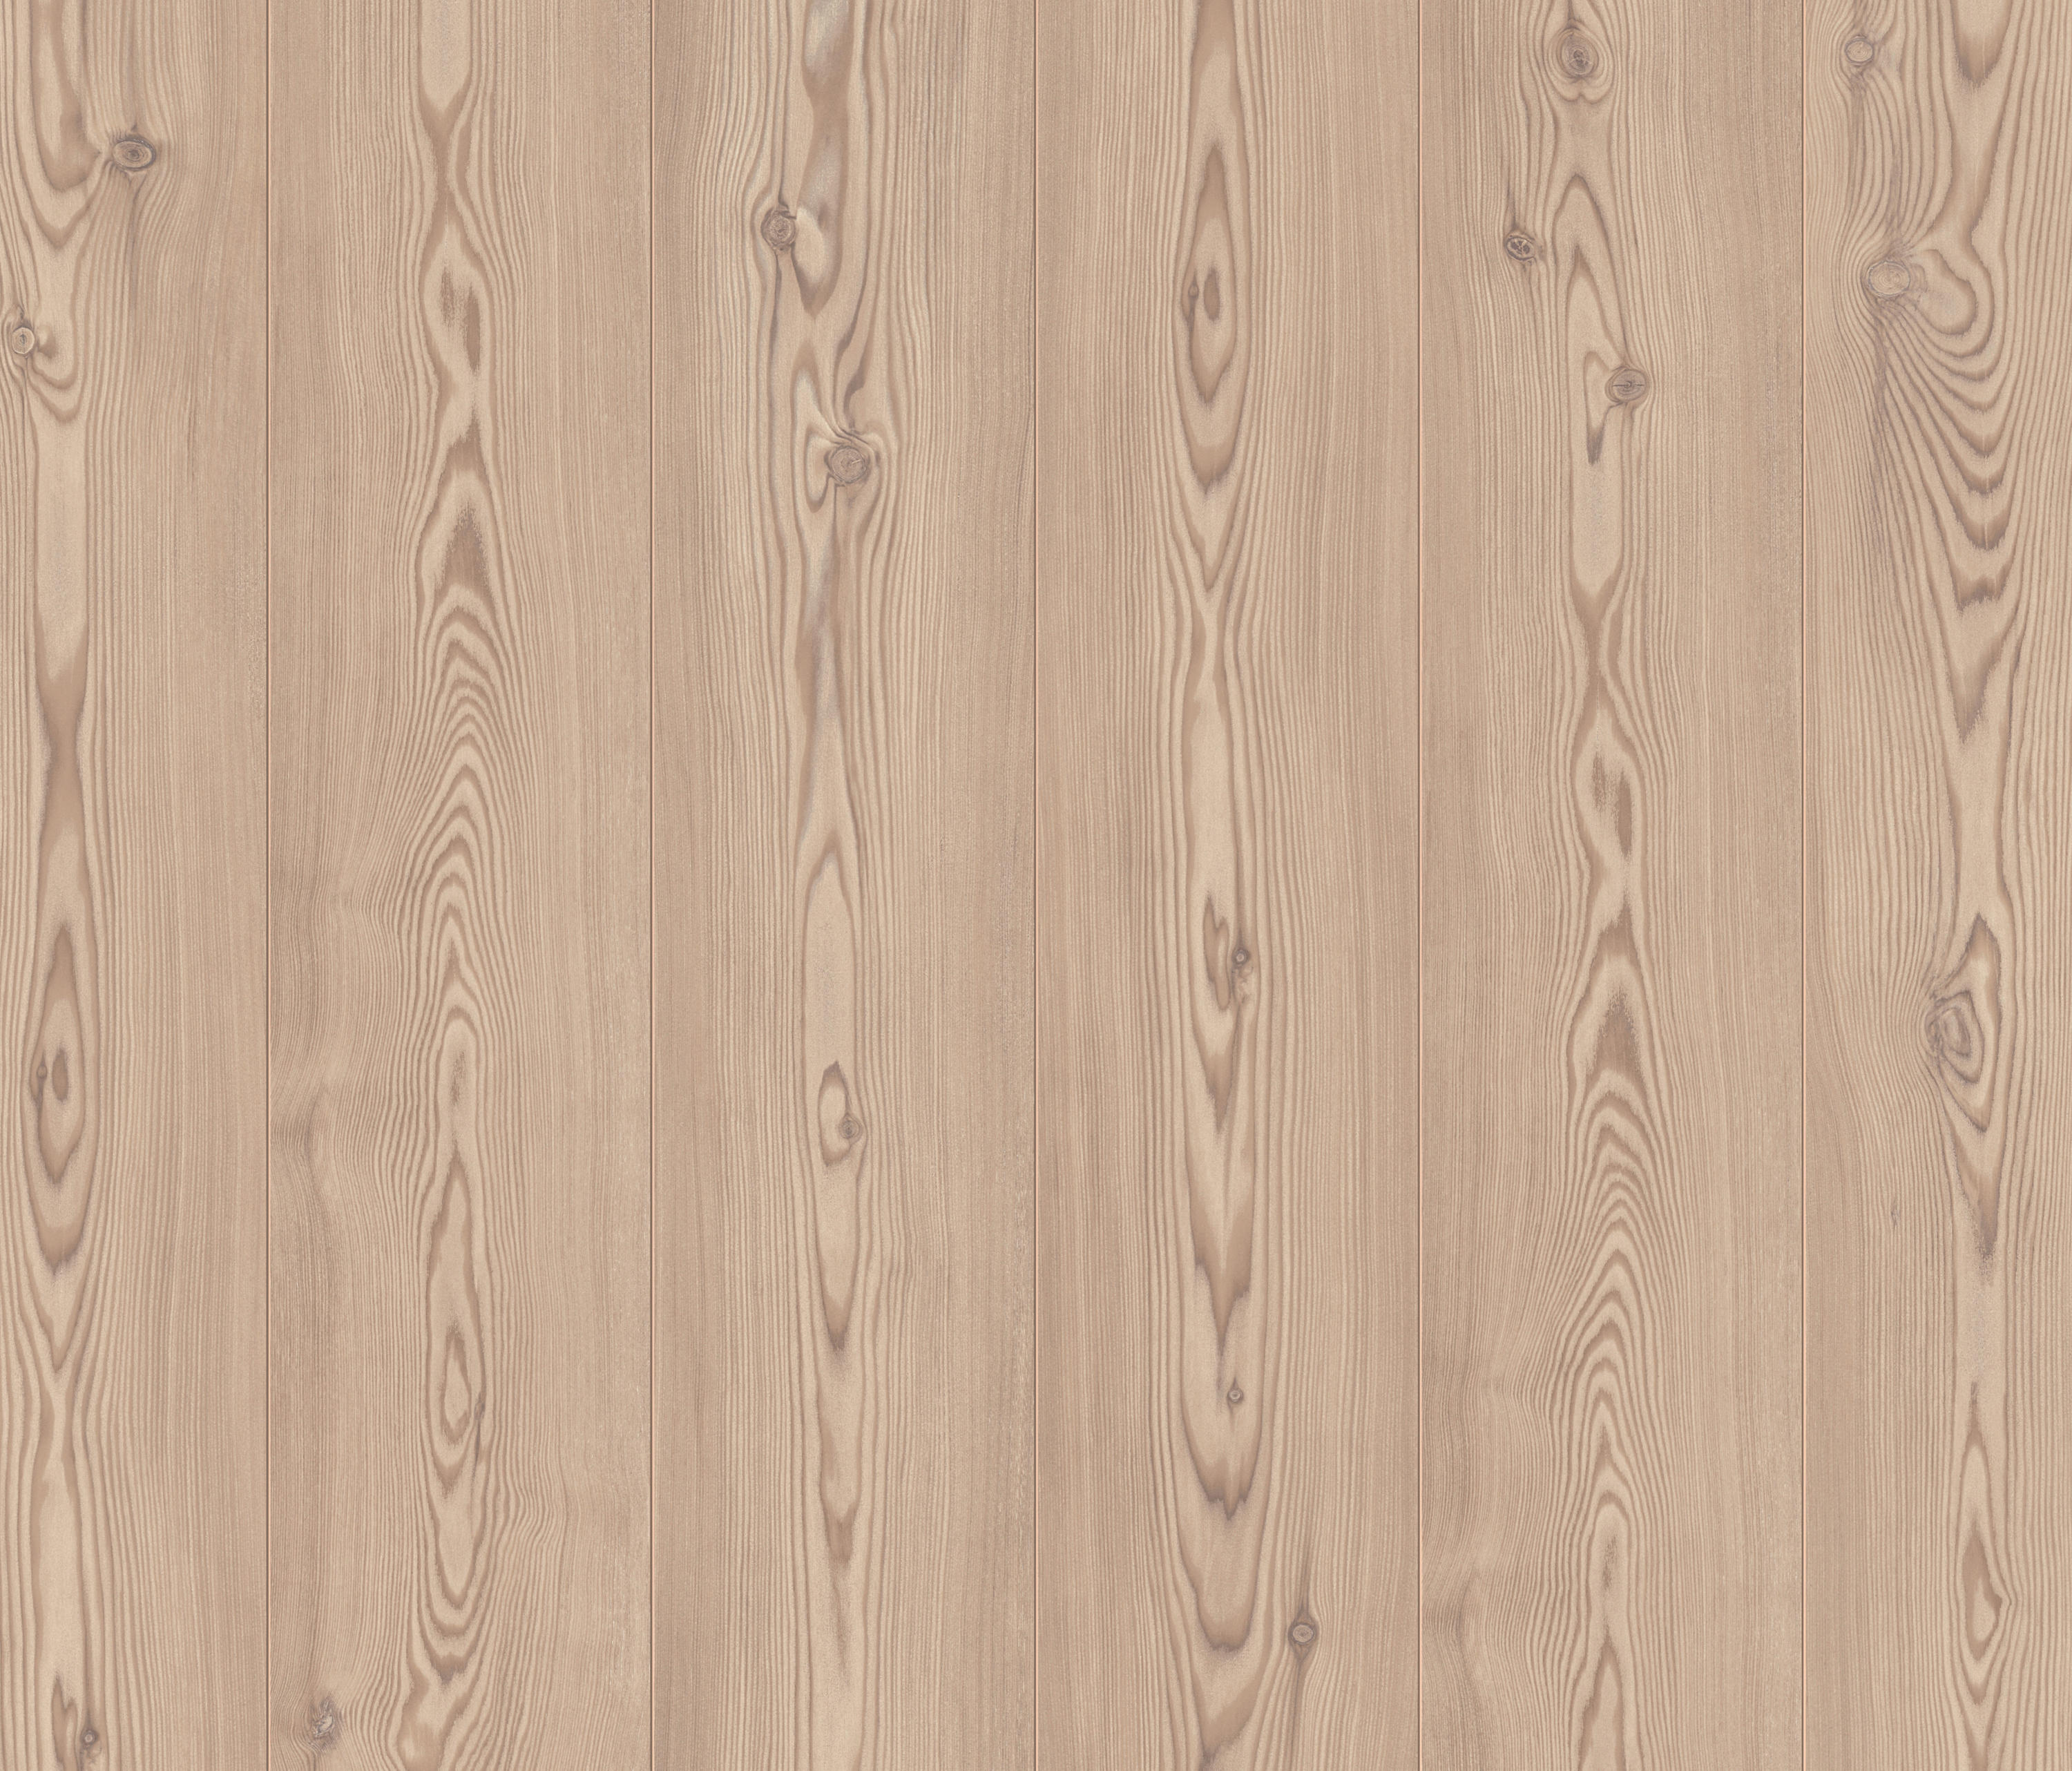 Endless Plank Cottage Pine Laminate Flooring From Pergo